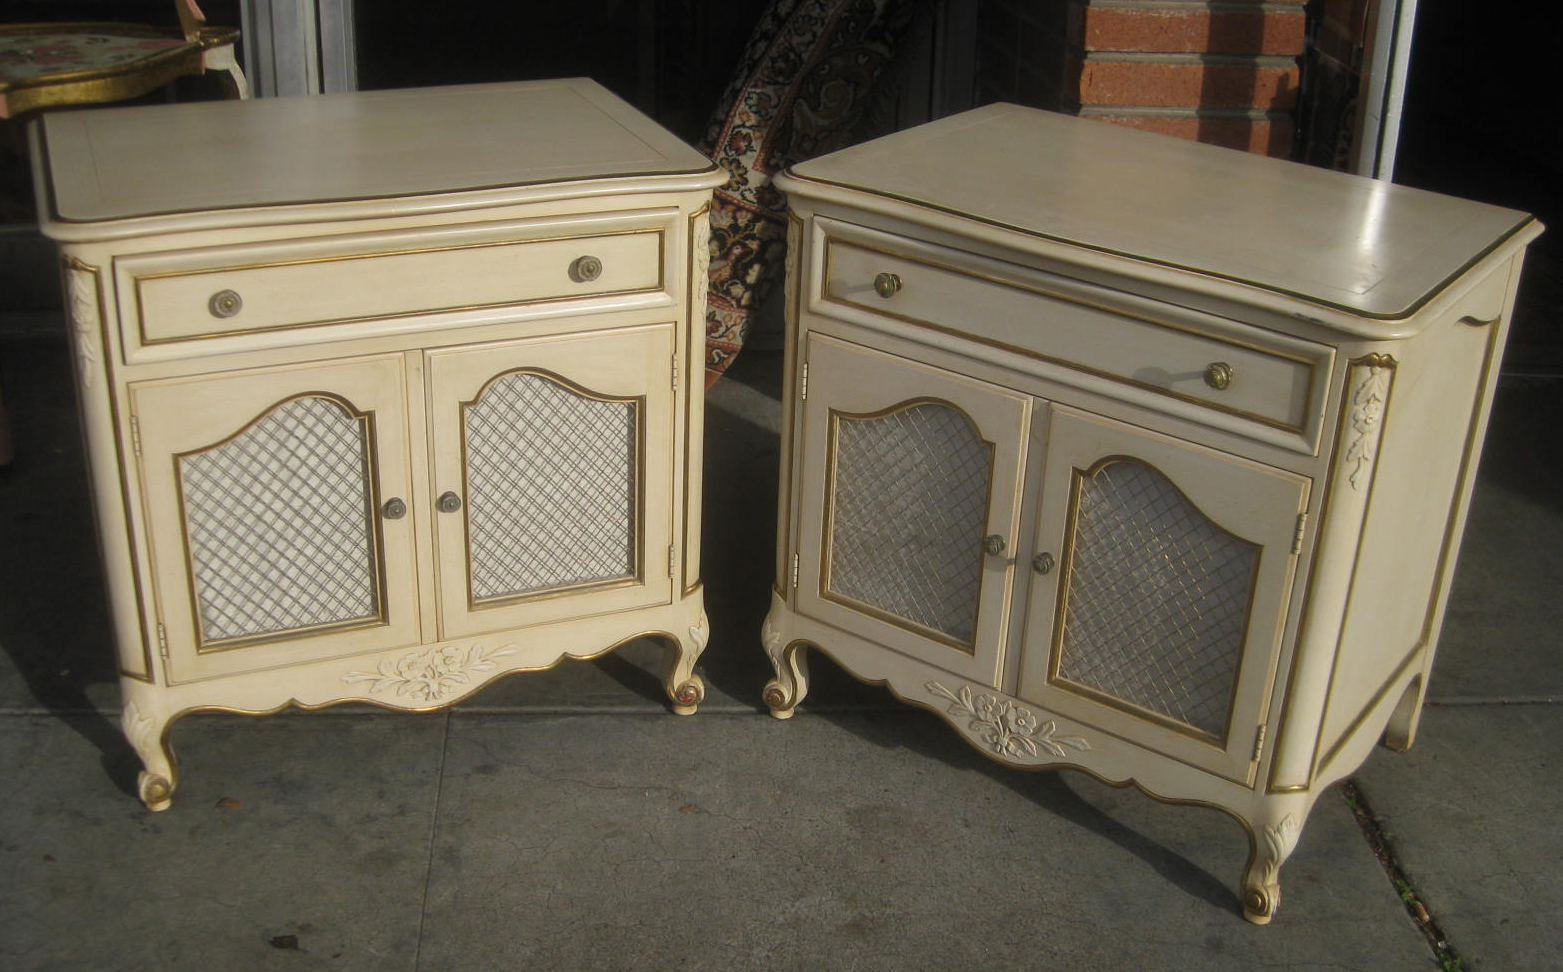 UHURU FURNITURE & COLLECTIBLES: SOLD